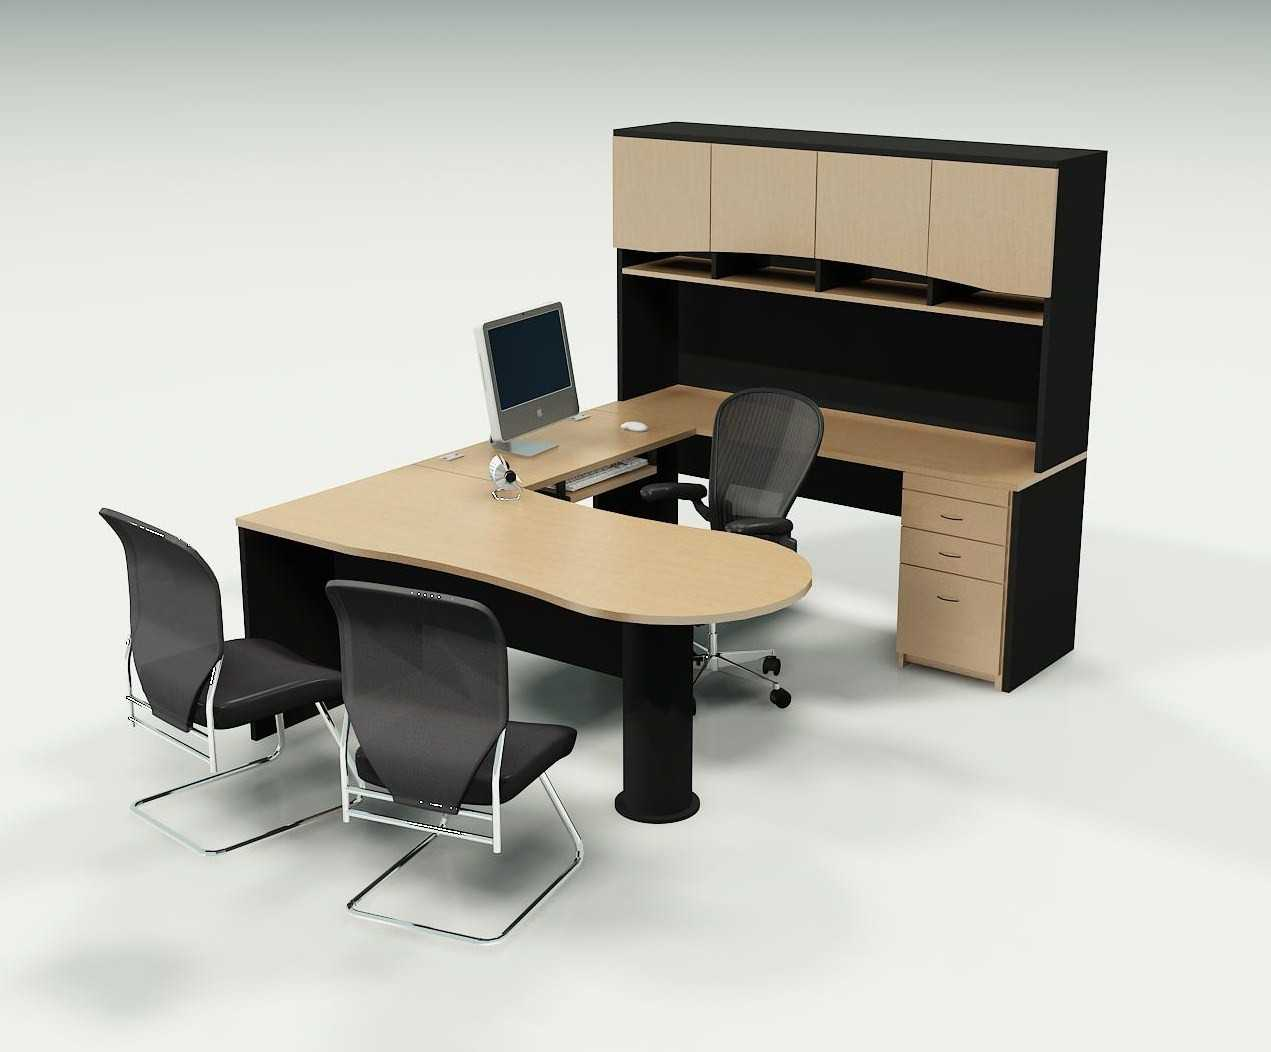 Office furniture ideas layout office furniture - Creative ideas office furniture ...